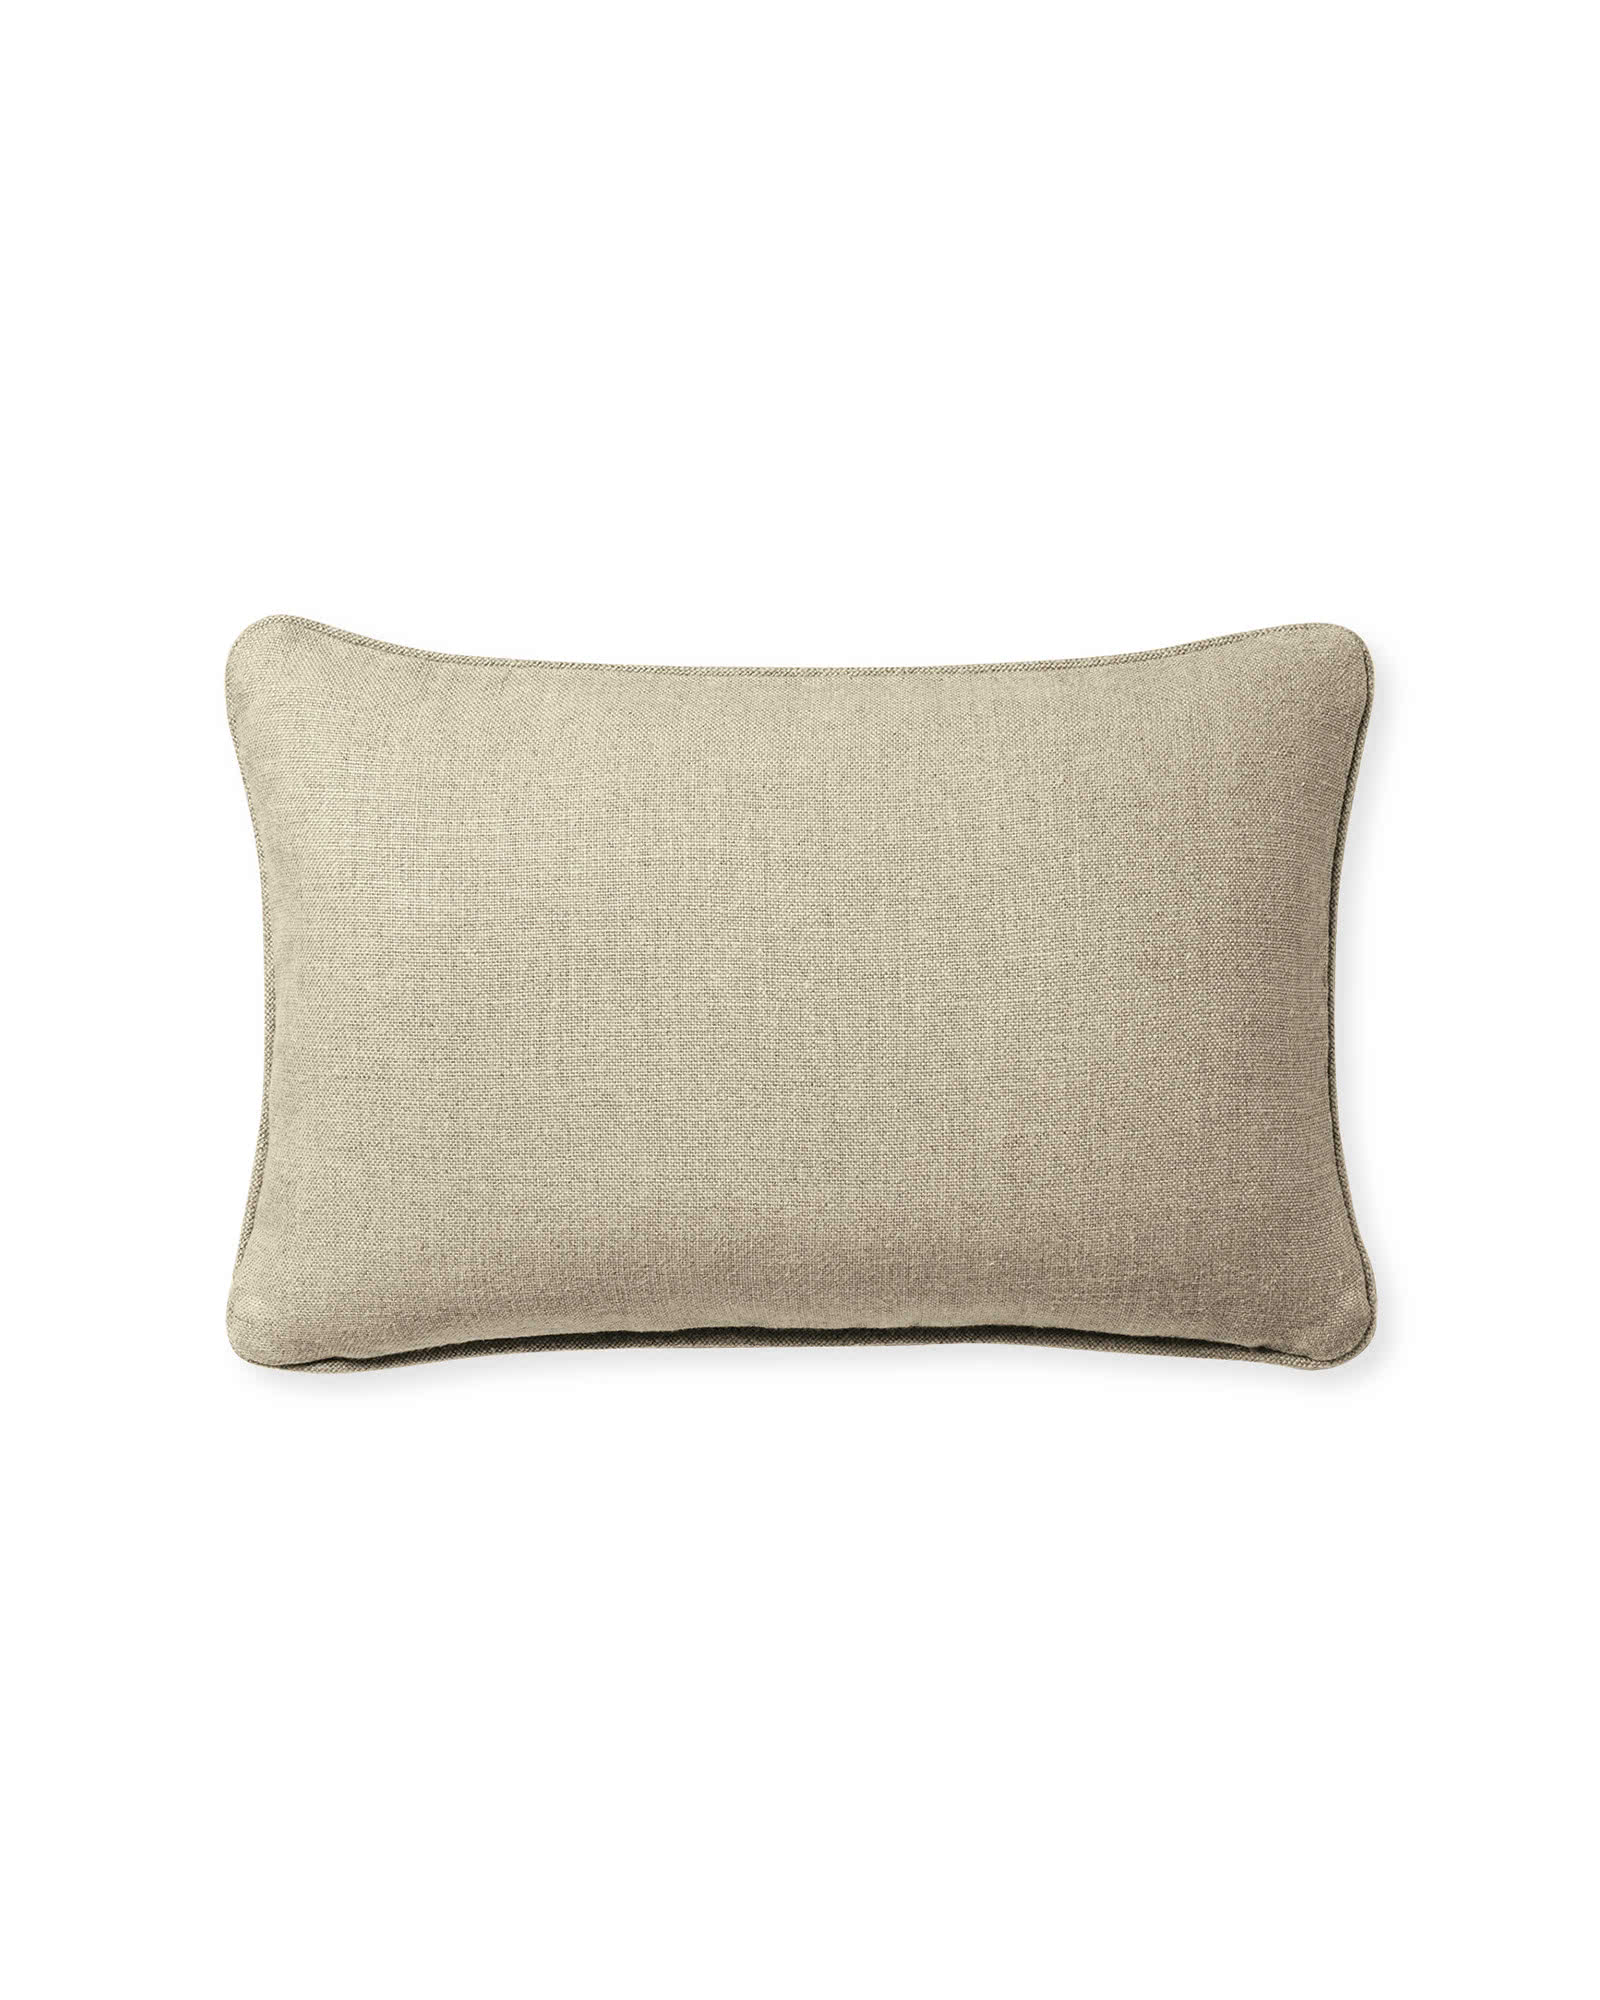 Leather Pillow Cover, Pink Sand